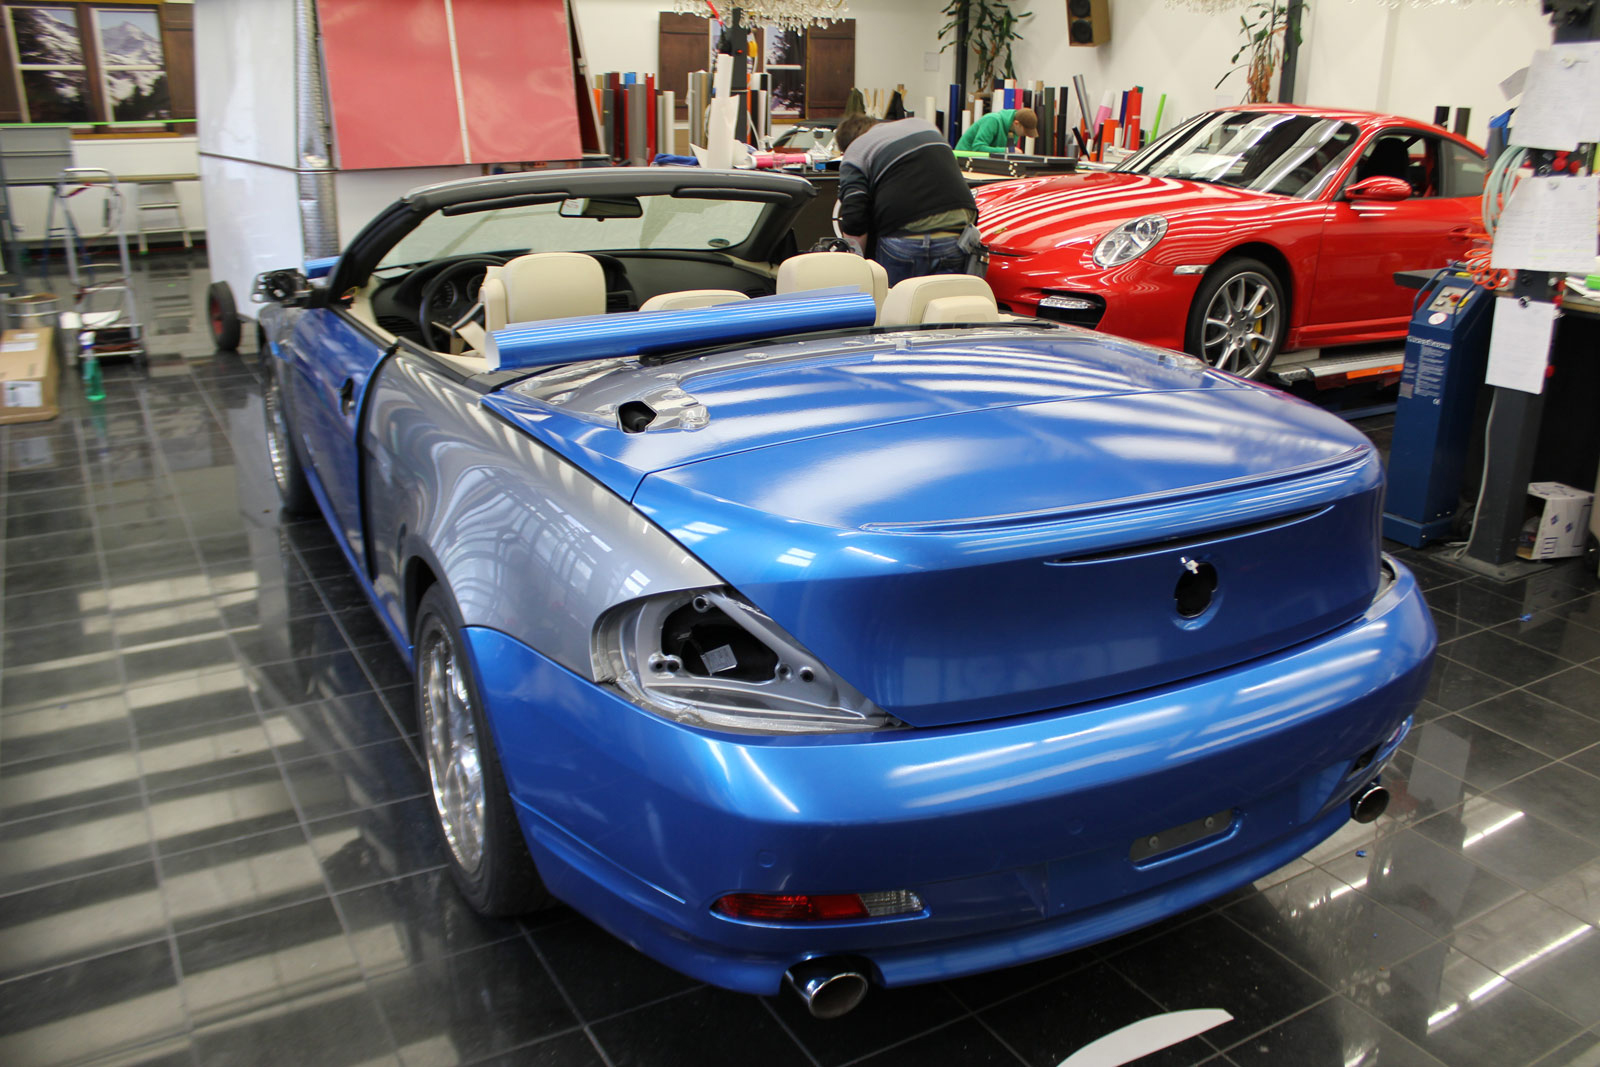 BMW_6er_Cabrio_Folierung_Bright_Blue_Metallic_04